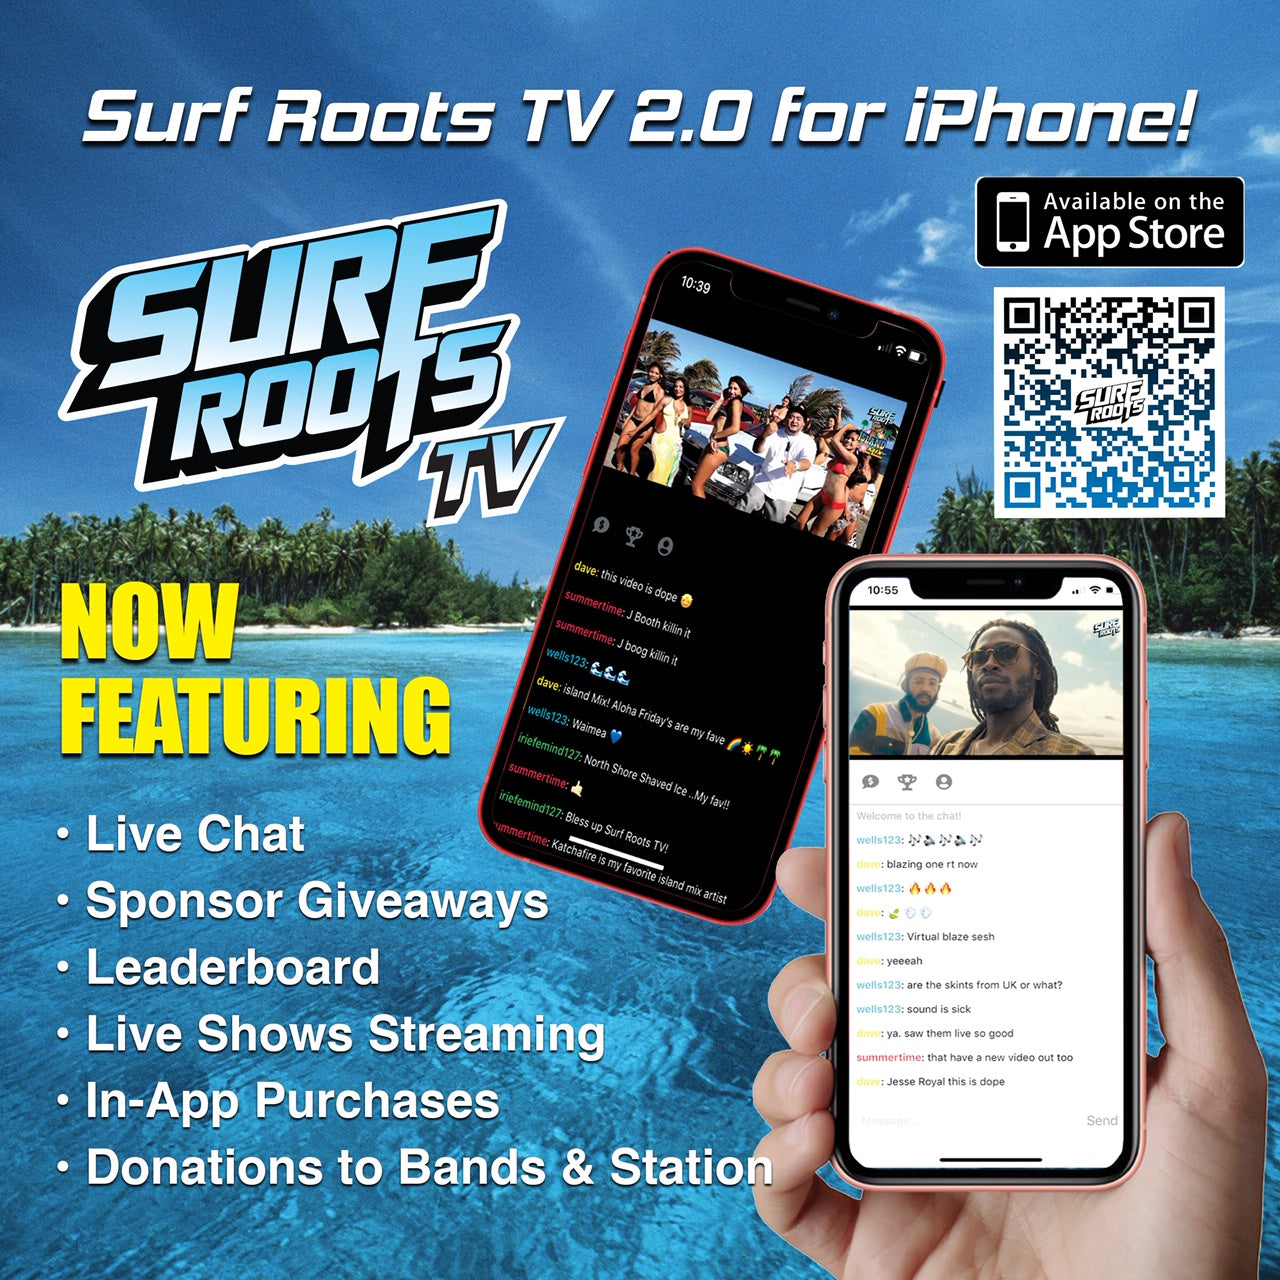 Surf Roots TV 2.0 for iPhone